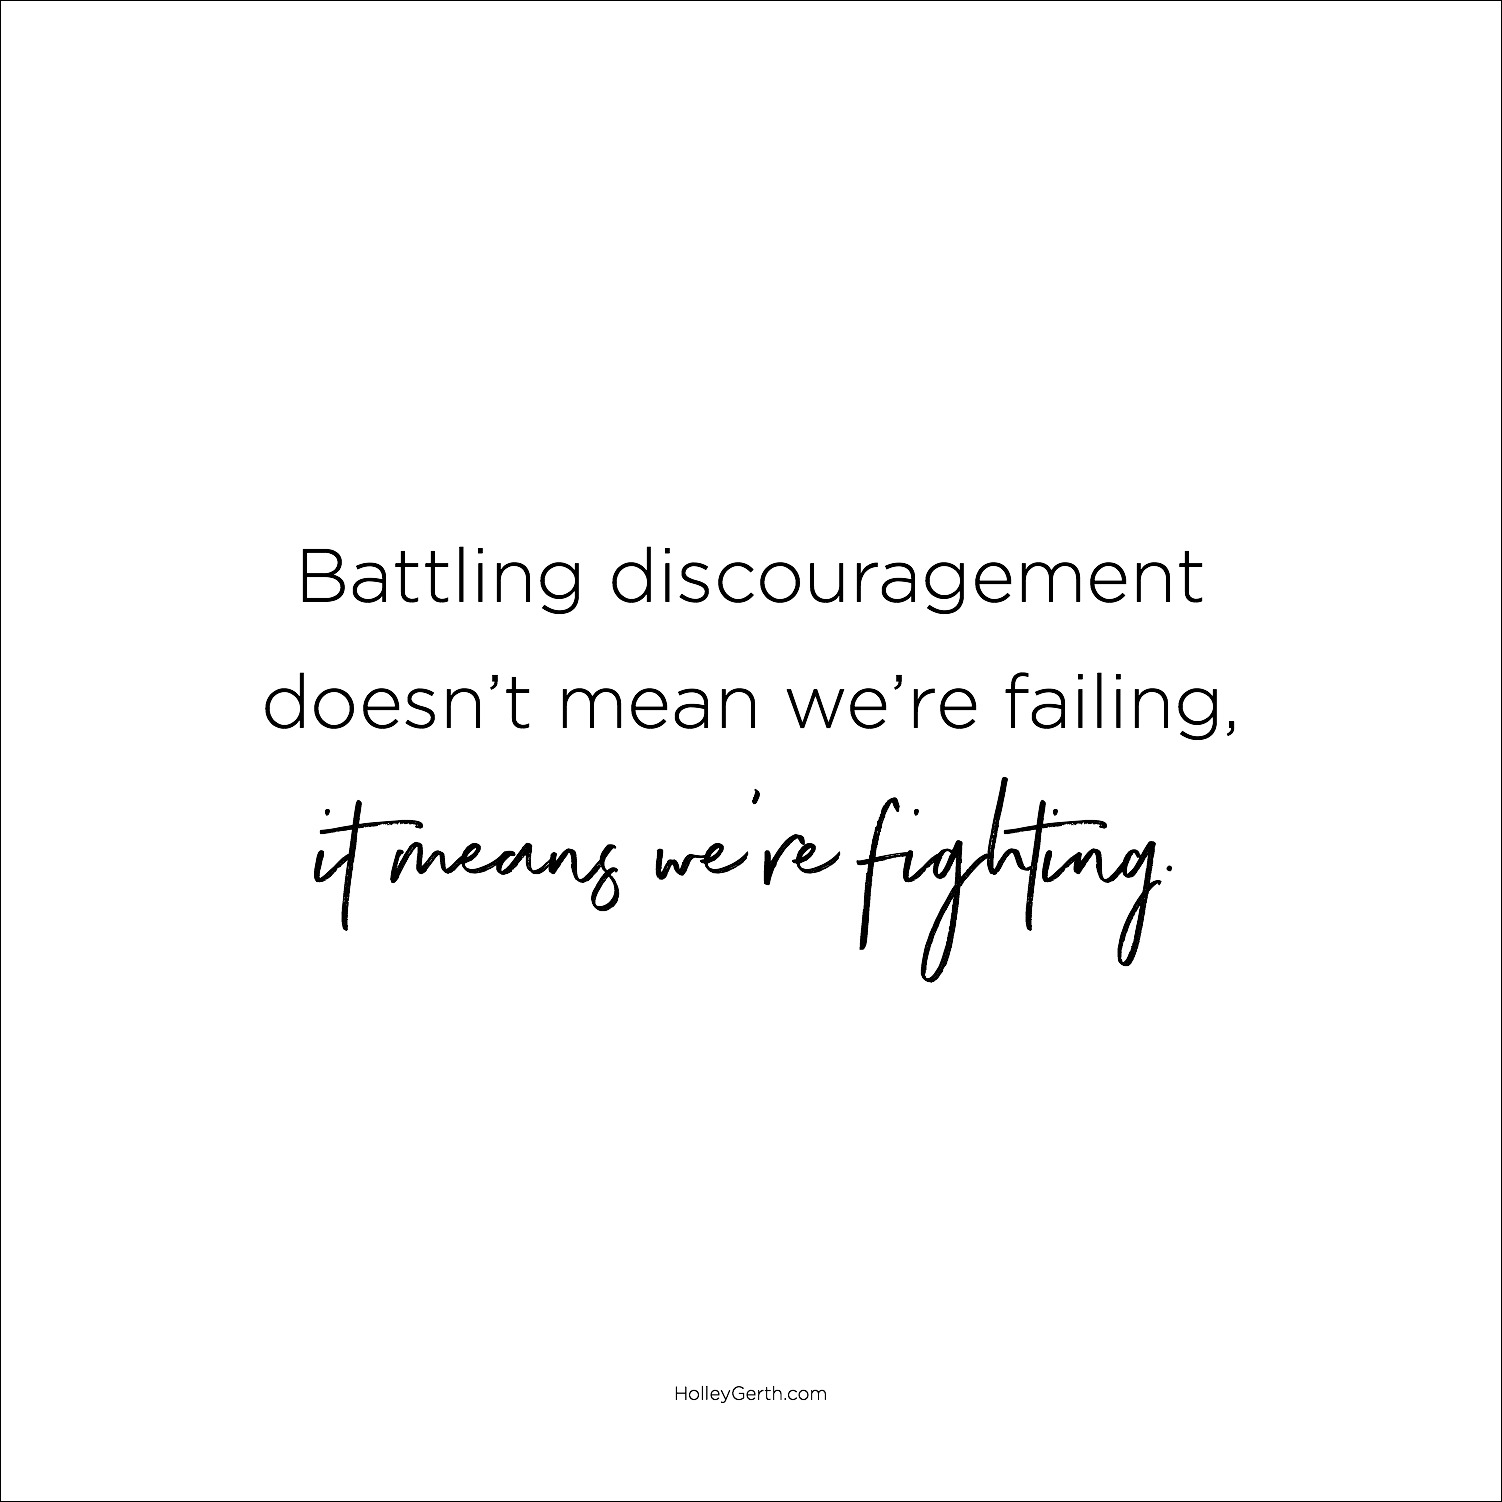 Battling discouragement doesn't mean we're failing, it means we're fighting